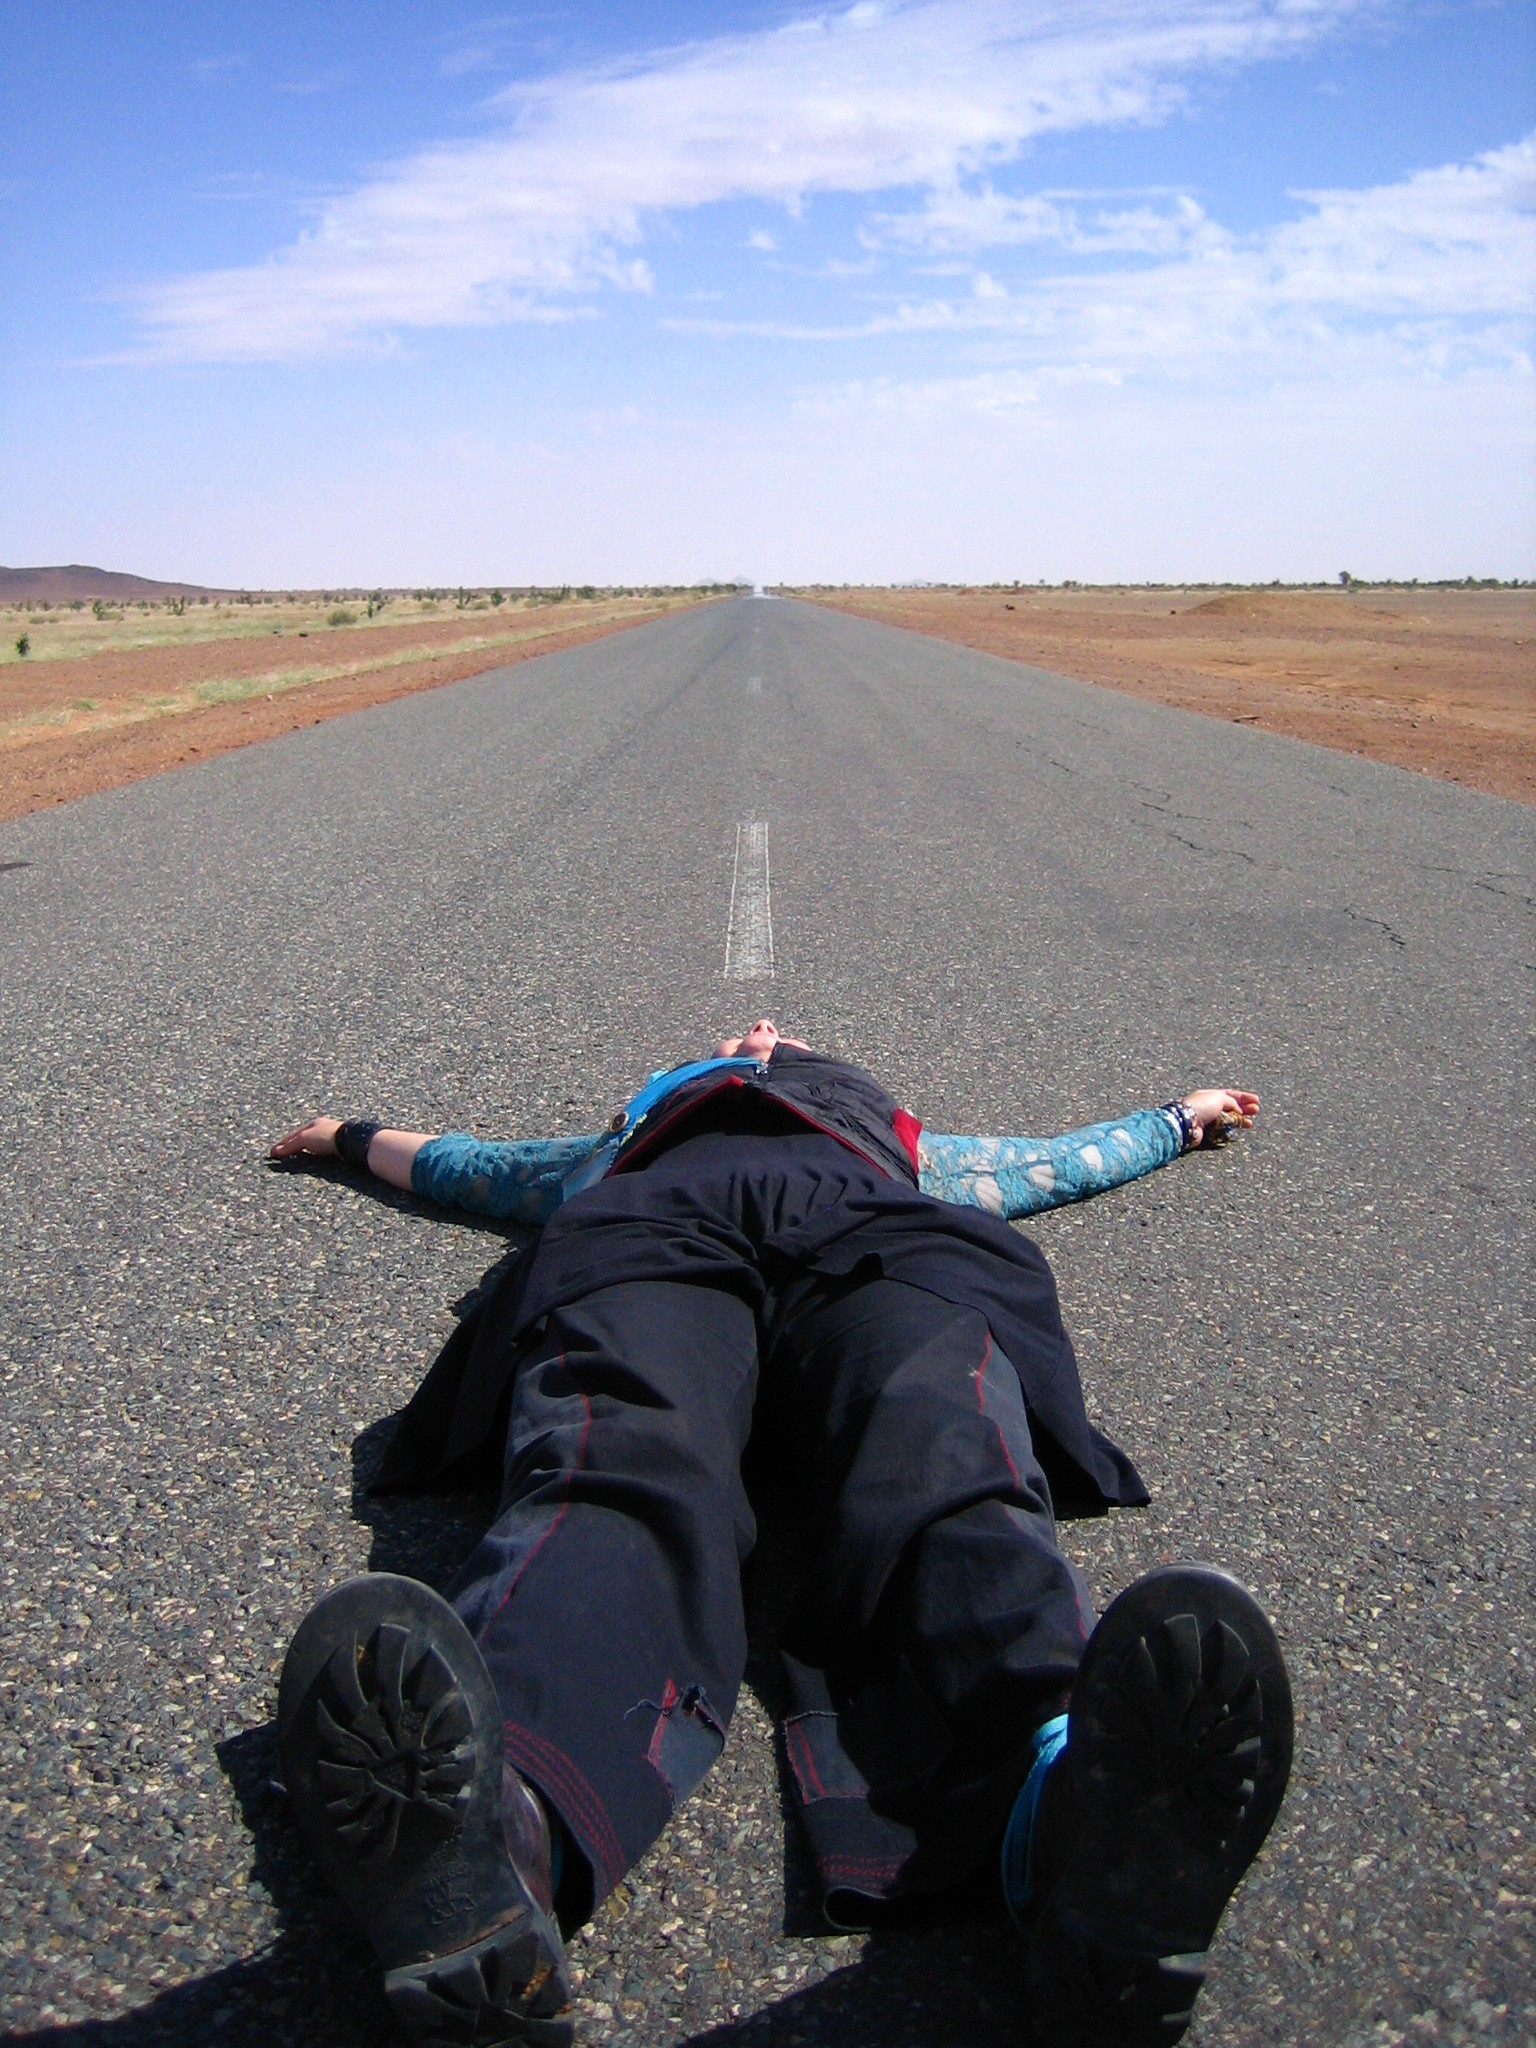 This picture is from hitchhiking in Mauritania a few years ago.  I love how it captures the sense of being overwhelmed and at peace at the same time, combined with being sort of stupid (i actually fell asleep in the middle of the road!) Infinite possibilities!